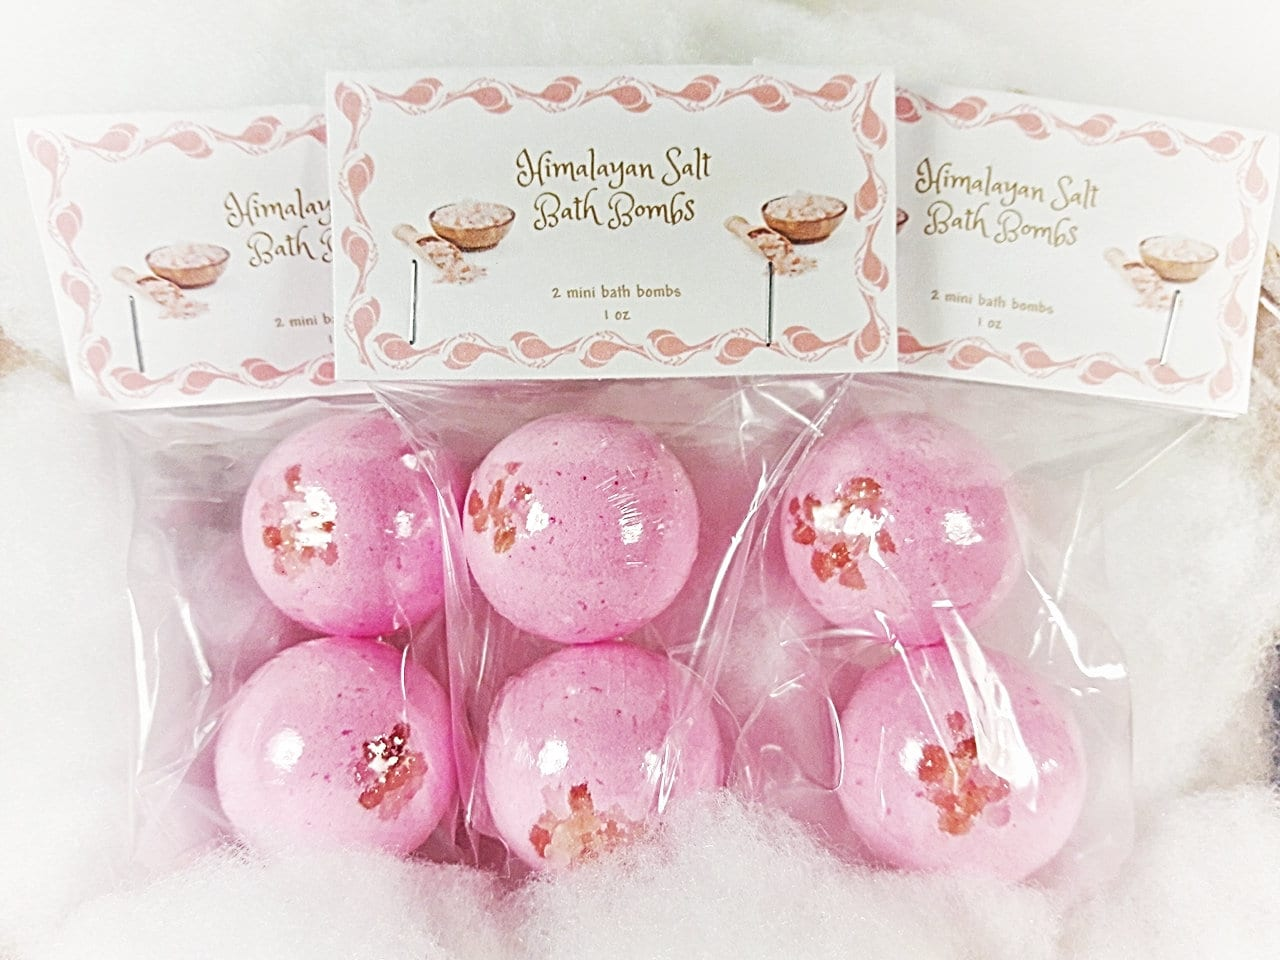 Mini Himalayan Salt Bath Bombs bath bomb bath bombs